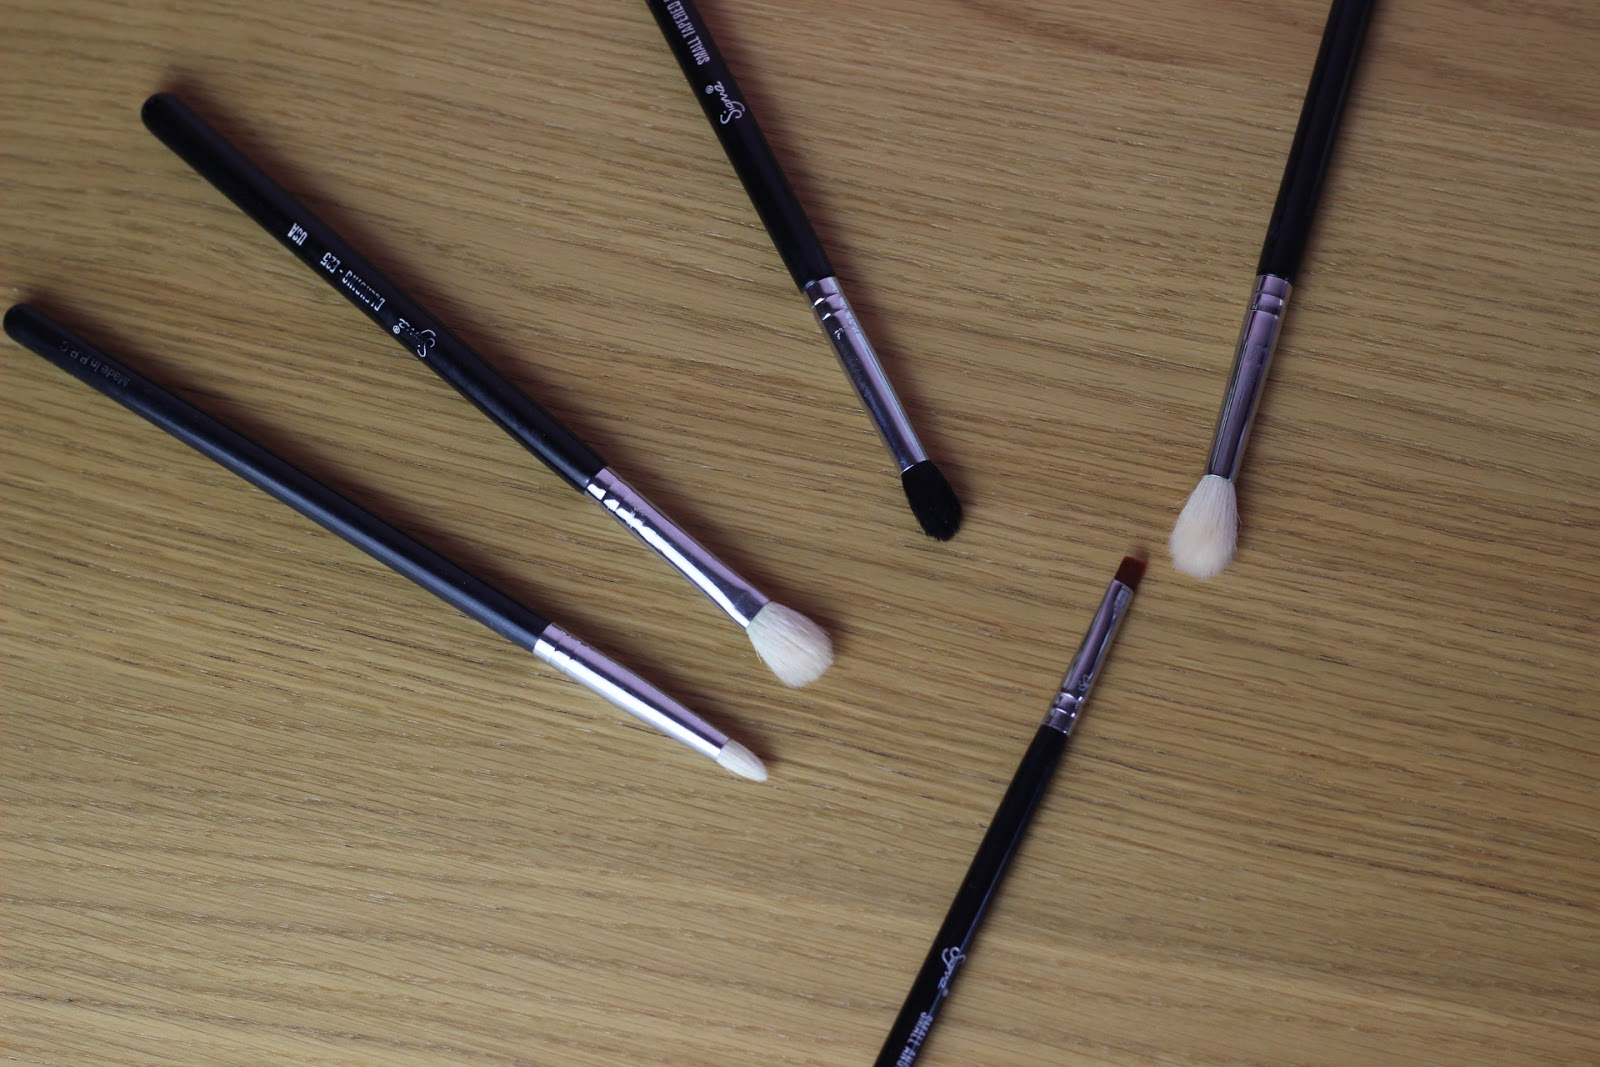 My Everyday Makeup Brushes